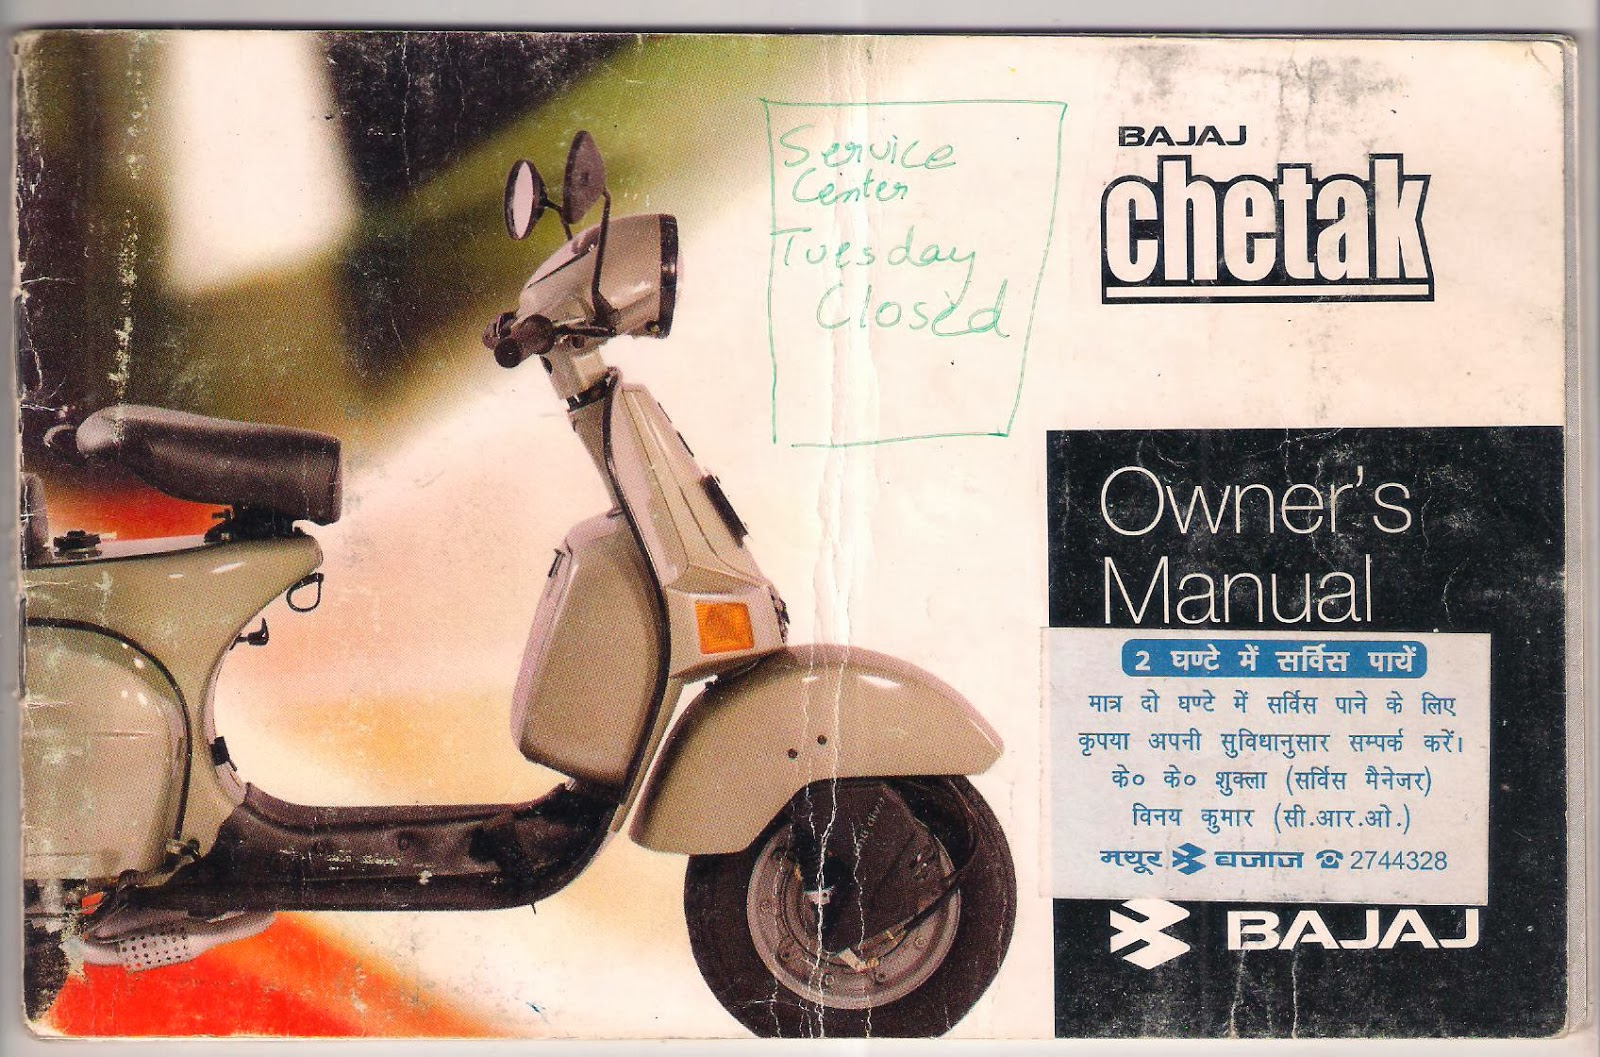 rare motorcycle bajaj chetak 2005 model owners manual rh oldraremotorcycles blogspot com bajaj chetak manual 2 stroke bajaj chetak repair manual